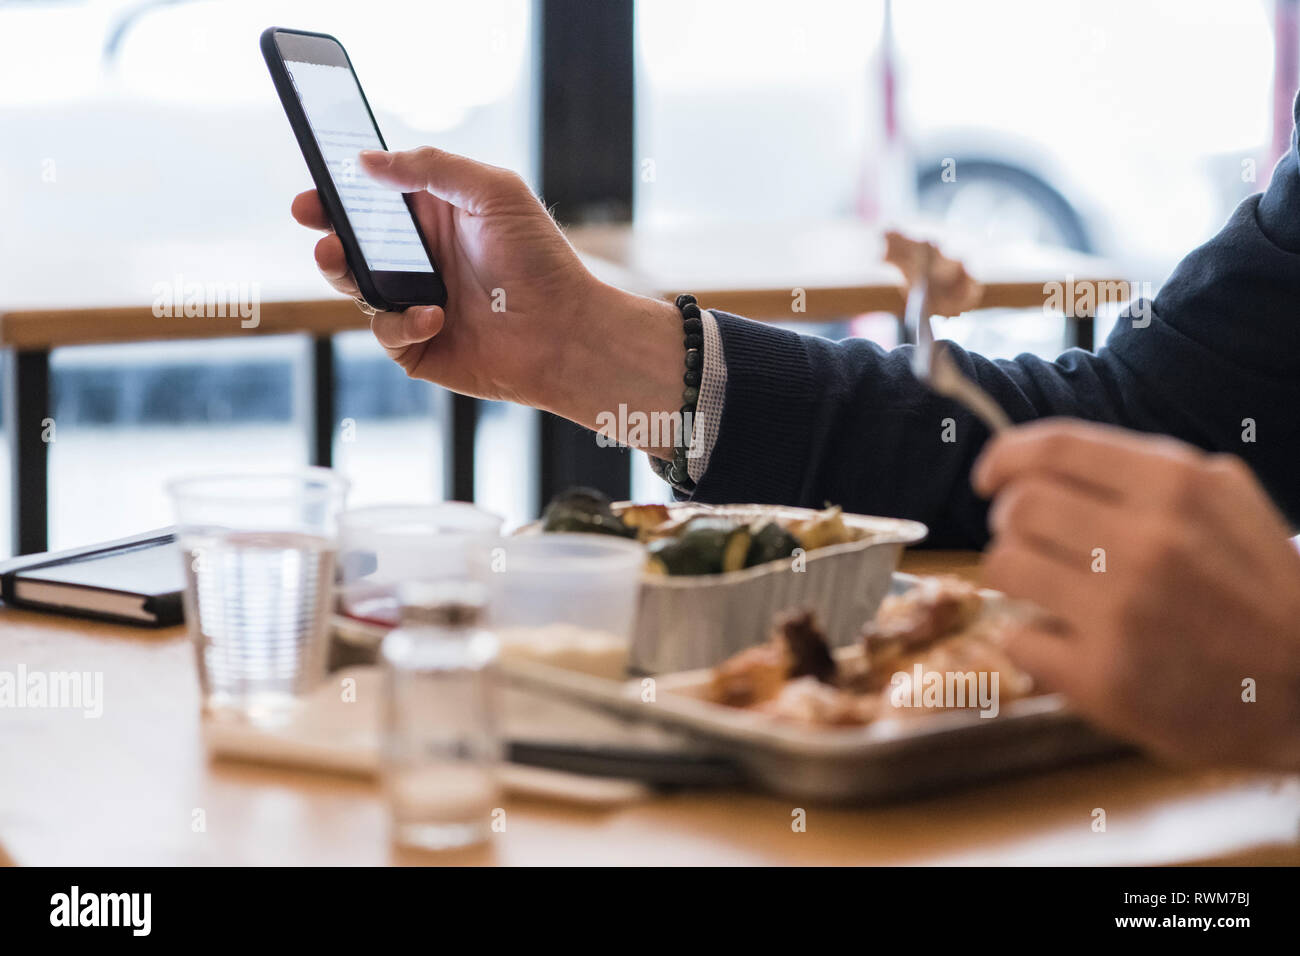 Businessman using smartphone and eating grilled chicken in